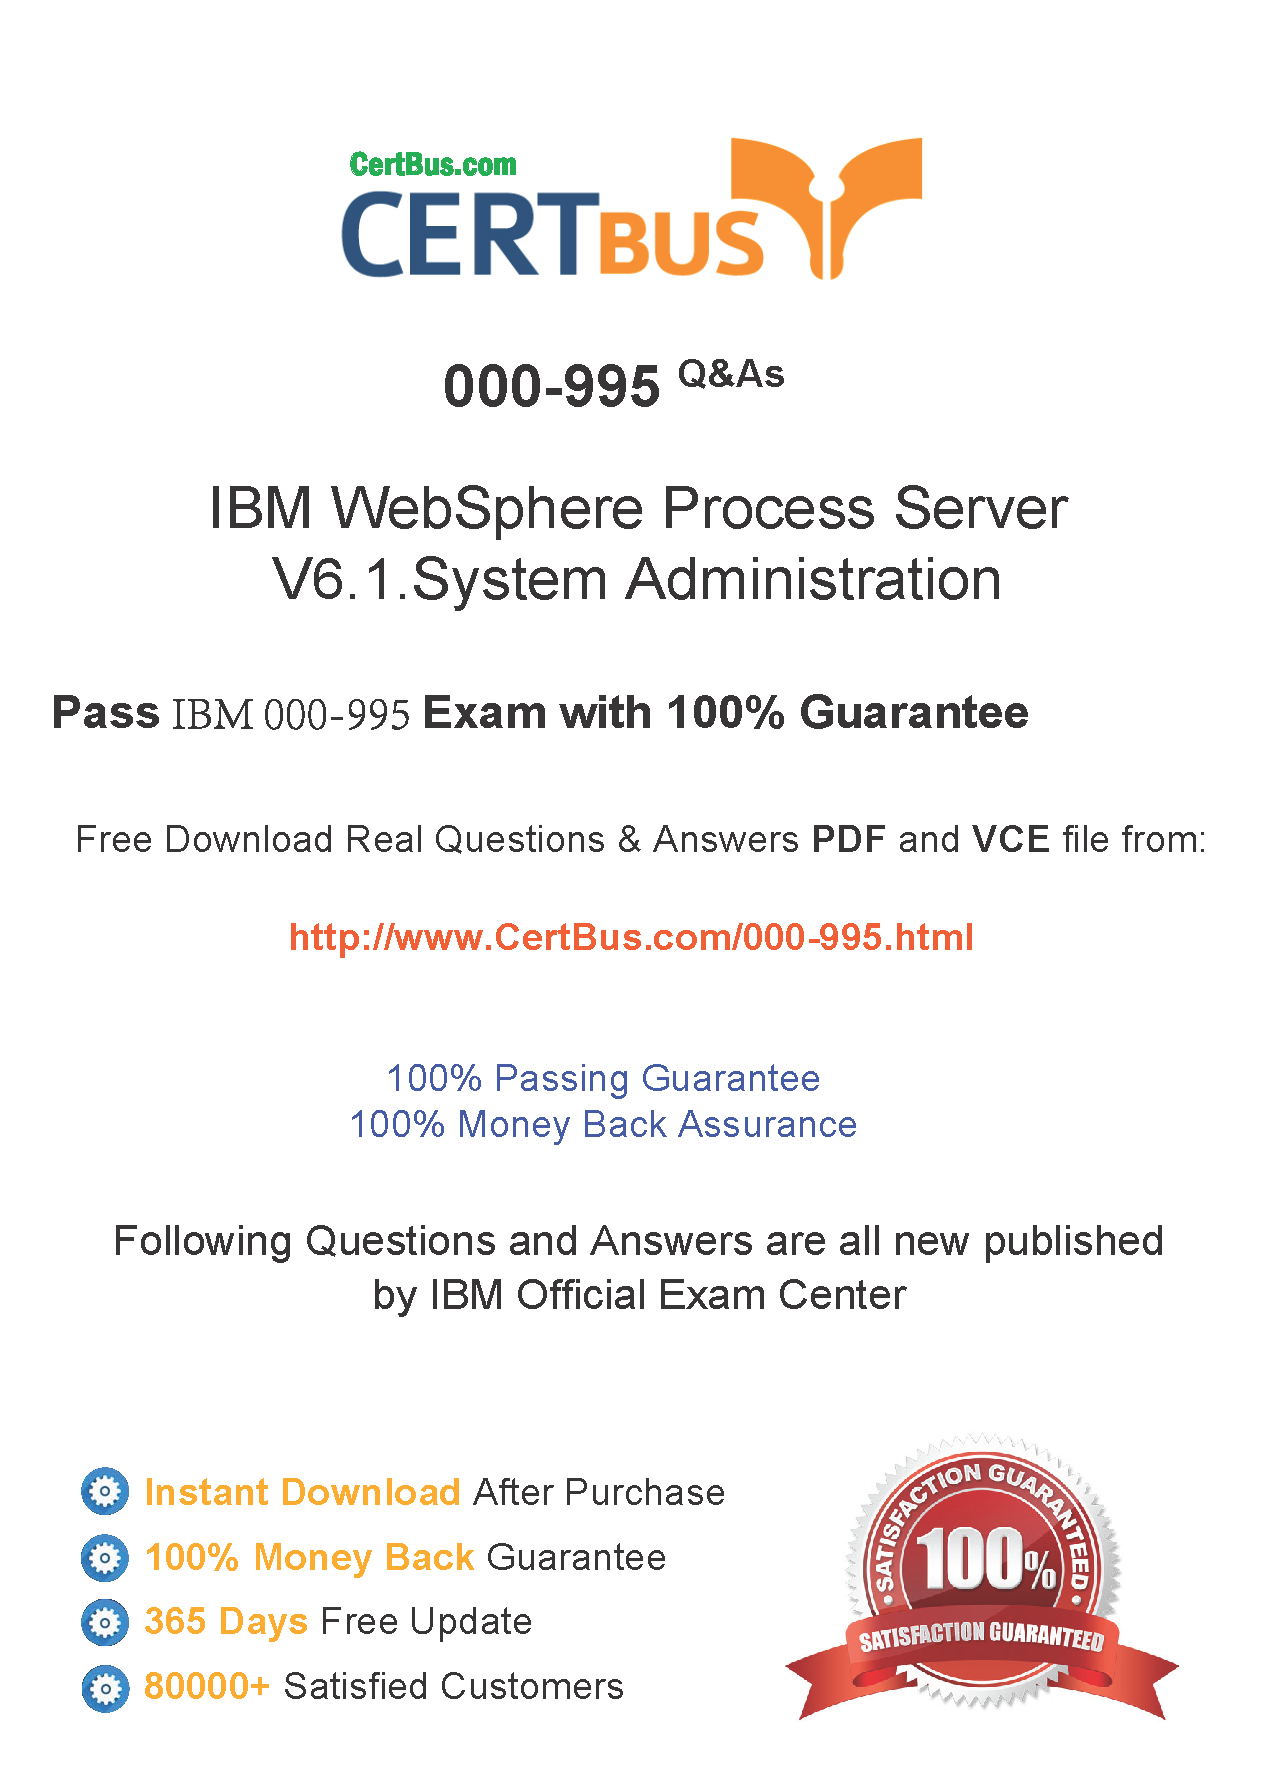 Candidate need to purchase the latest IBM 000-995 Dumps with latest IBM 000-995 Exam Questions. Here is a suggestion for you: Here you can find the latest IBM 000-995 New Questions in their IBM 000-995 PDF, IBM 000-995 VCE and IBM 000-995 braindumps. Their IBM 000-995 exam dumps are with the latest IBM 000-995 exam question. With IBM 000-995 pdf dumps, you will be successful. Highly recommend this IBM 000-995 Practice Test.